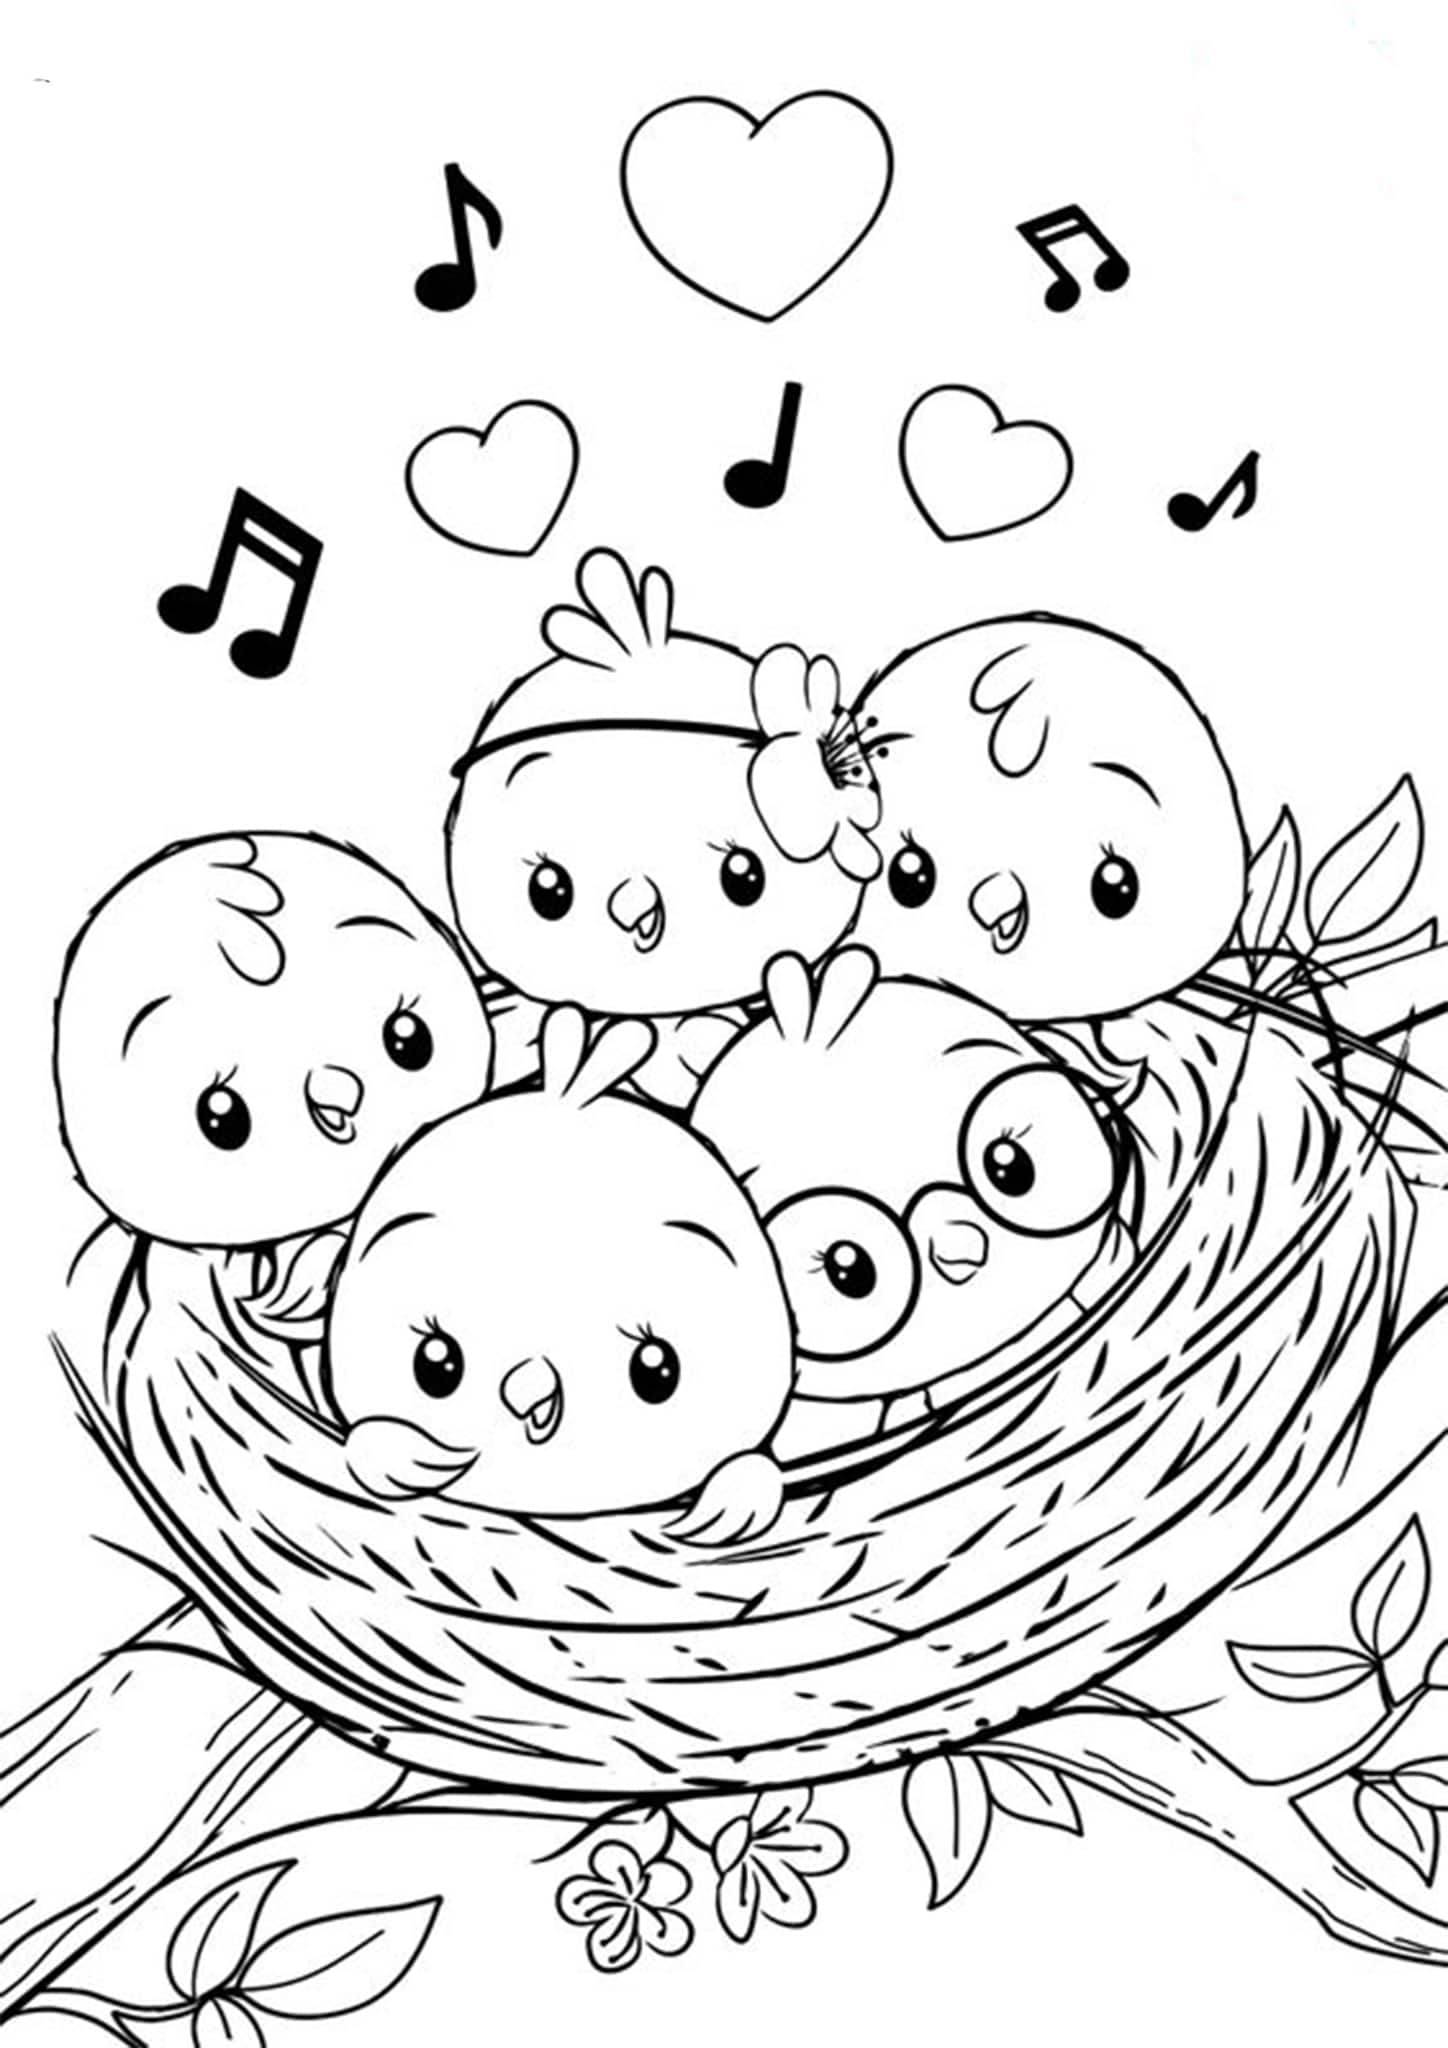 birds coloring pages bird coloring pages coloring birds pages 1 1